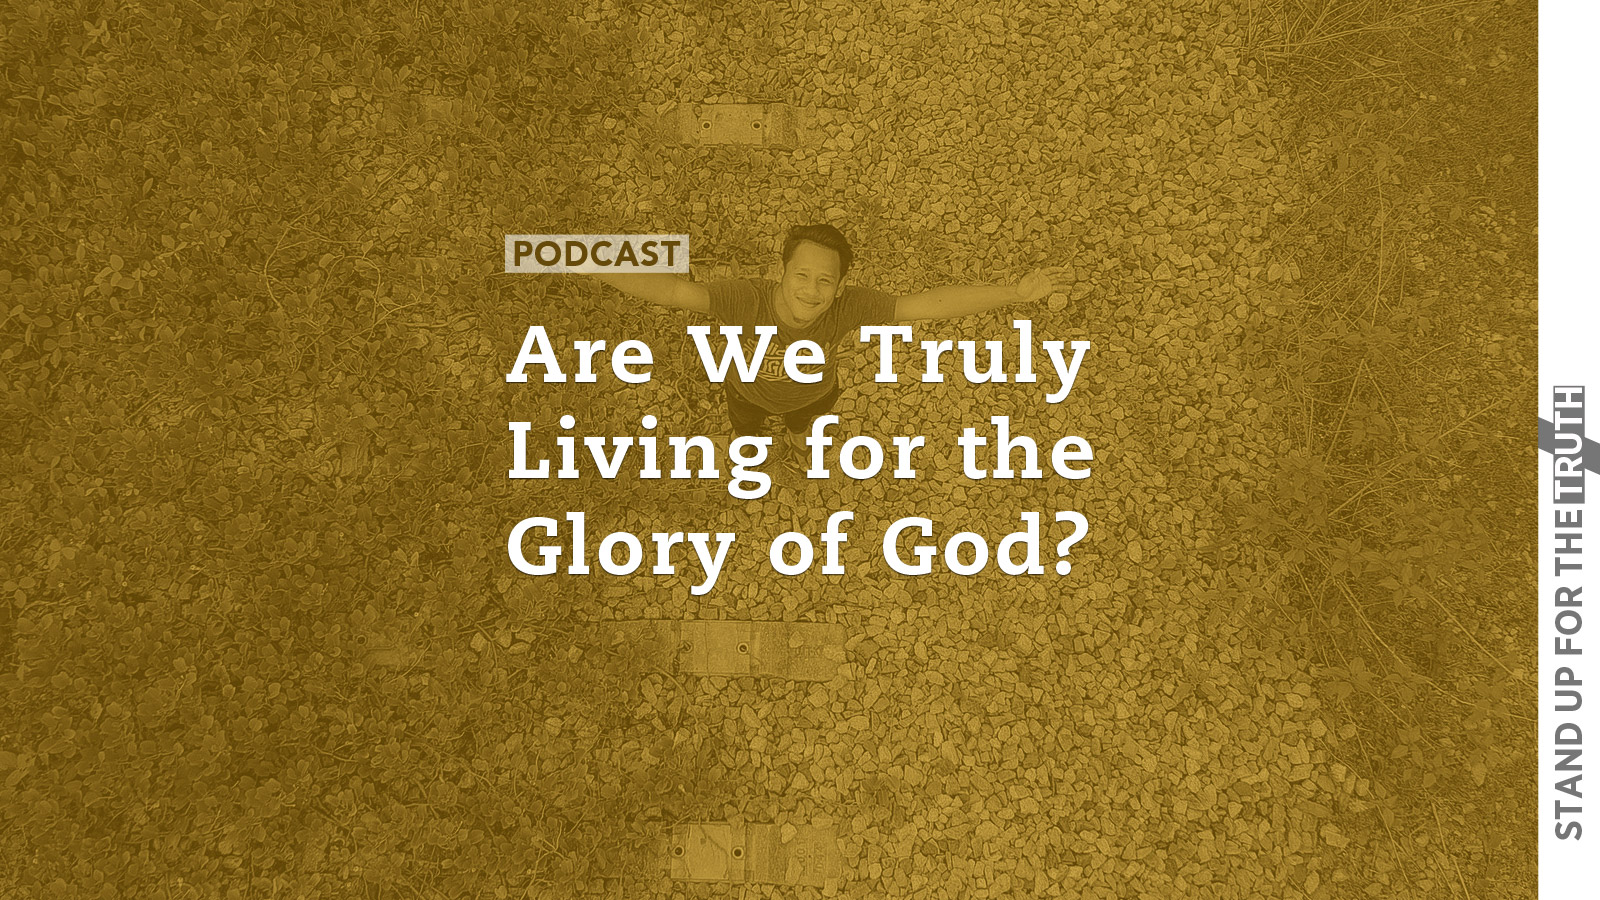 a life spent for the glory of god The glory of god we are very conscious that the glory of god is vast - all too vast for our complete understanding or for the small limits of these little messages, but as it is so bound up with our hope, so interwoven in the prison epistles.